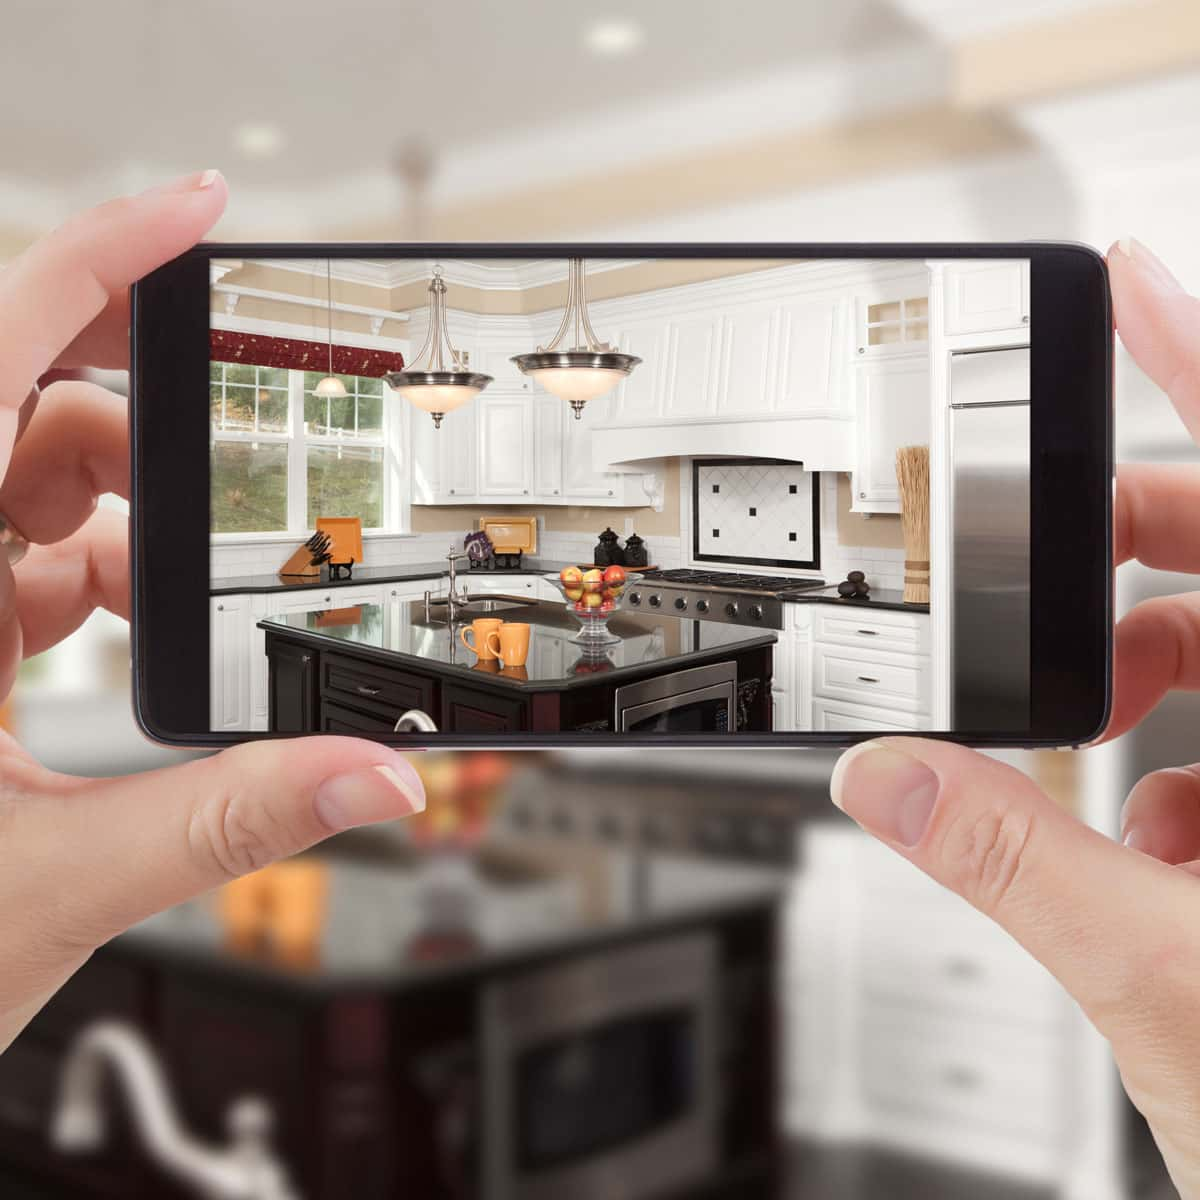 Taking a photo of the new kitchen on a phone